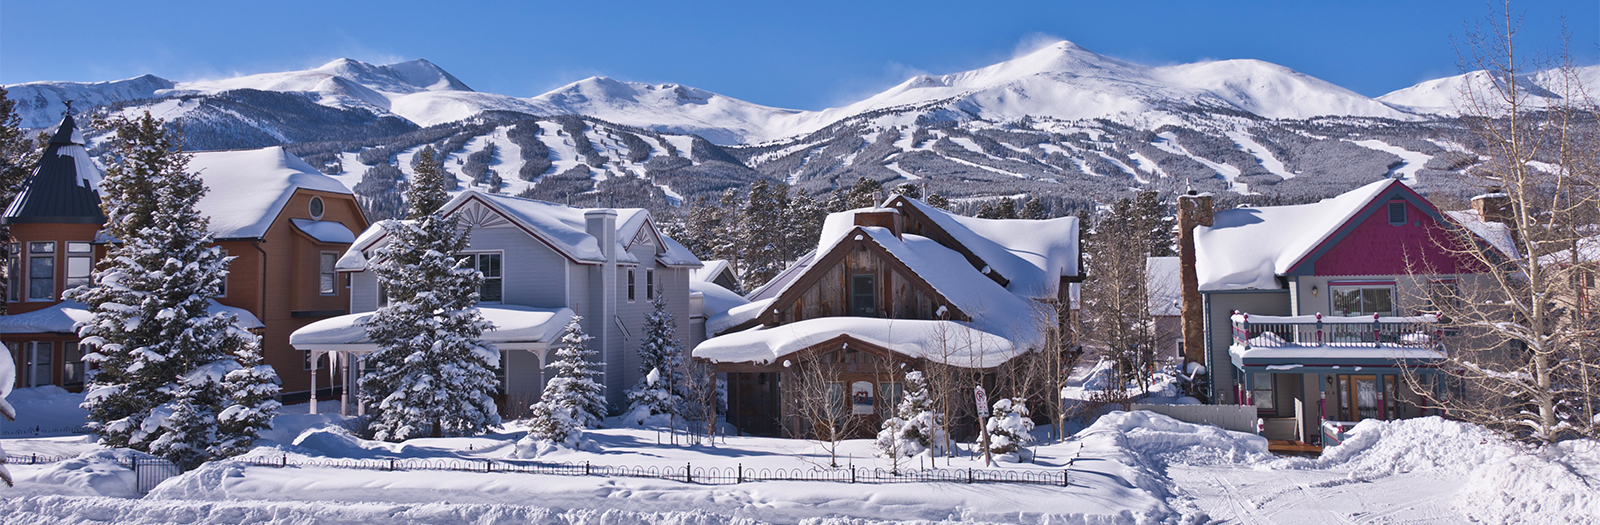 Breckenridge, breckenridge lodging, stay and ski packages, vacation lodging